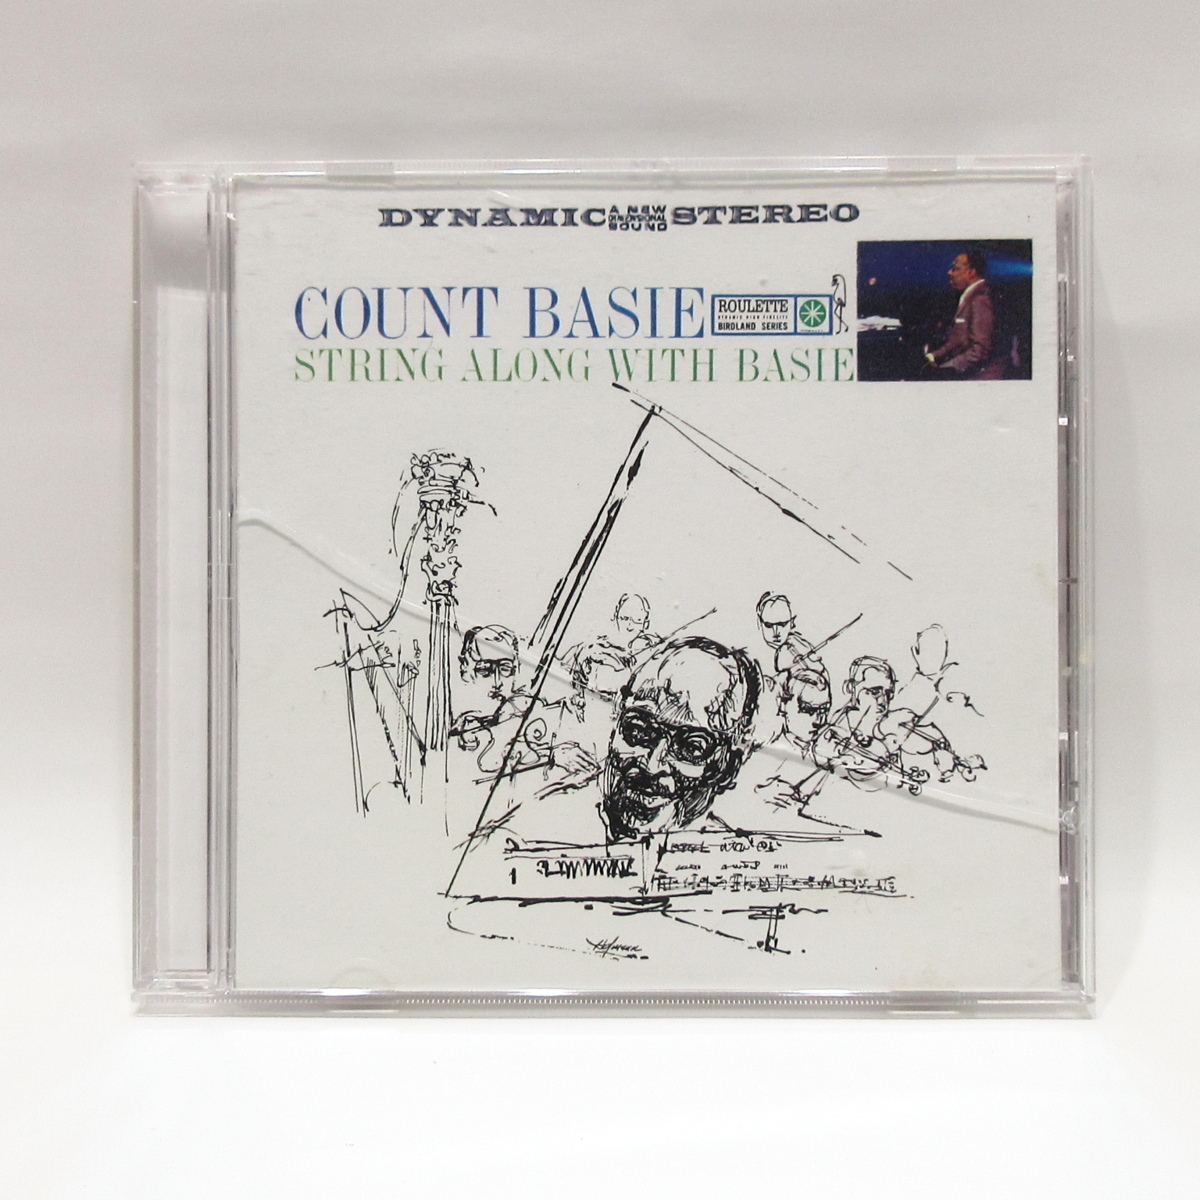 CD◆Count Basie / String Along With Basie◇カウント・ベイシー◆Roulette WPCR-16598_画像1